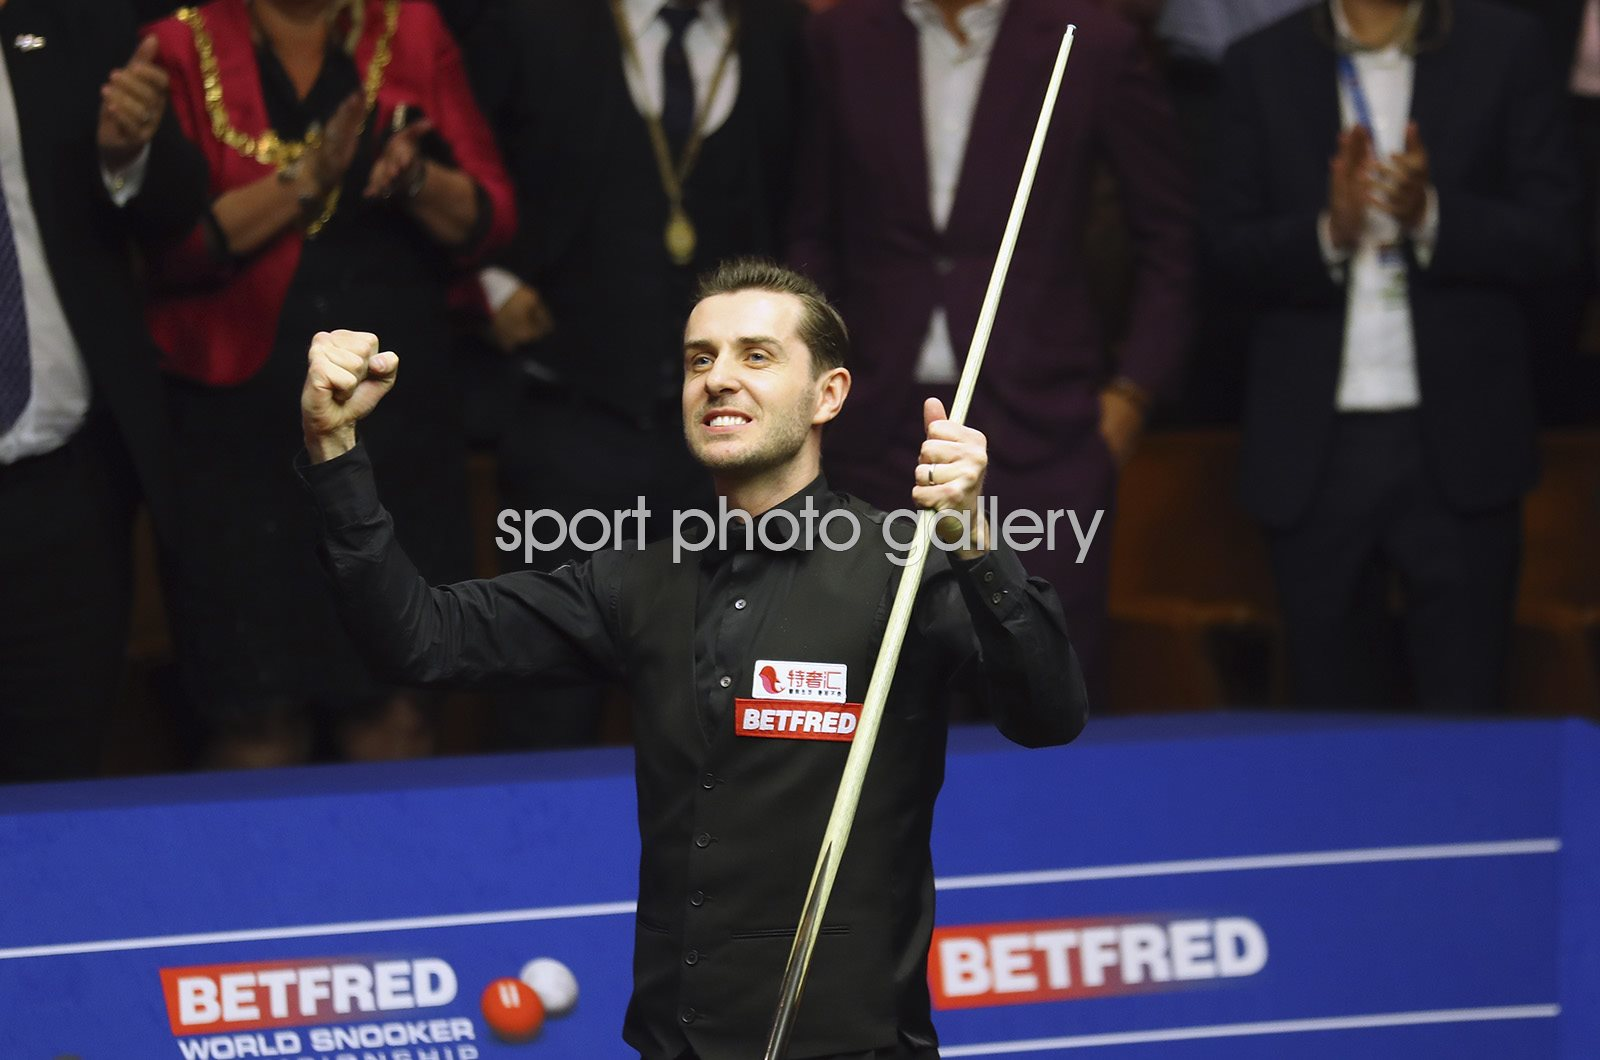 Mark Selby World Snooker Champion 2017